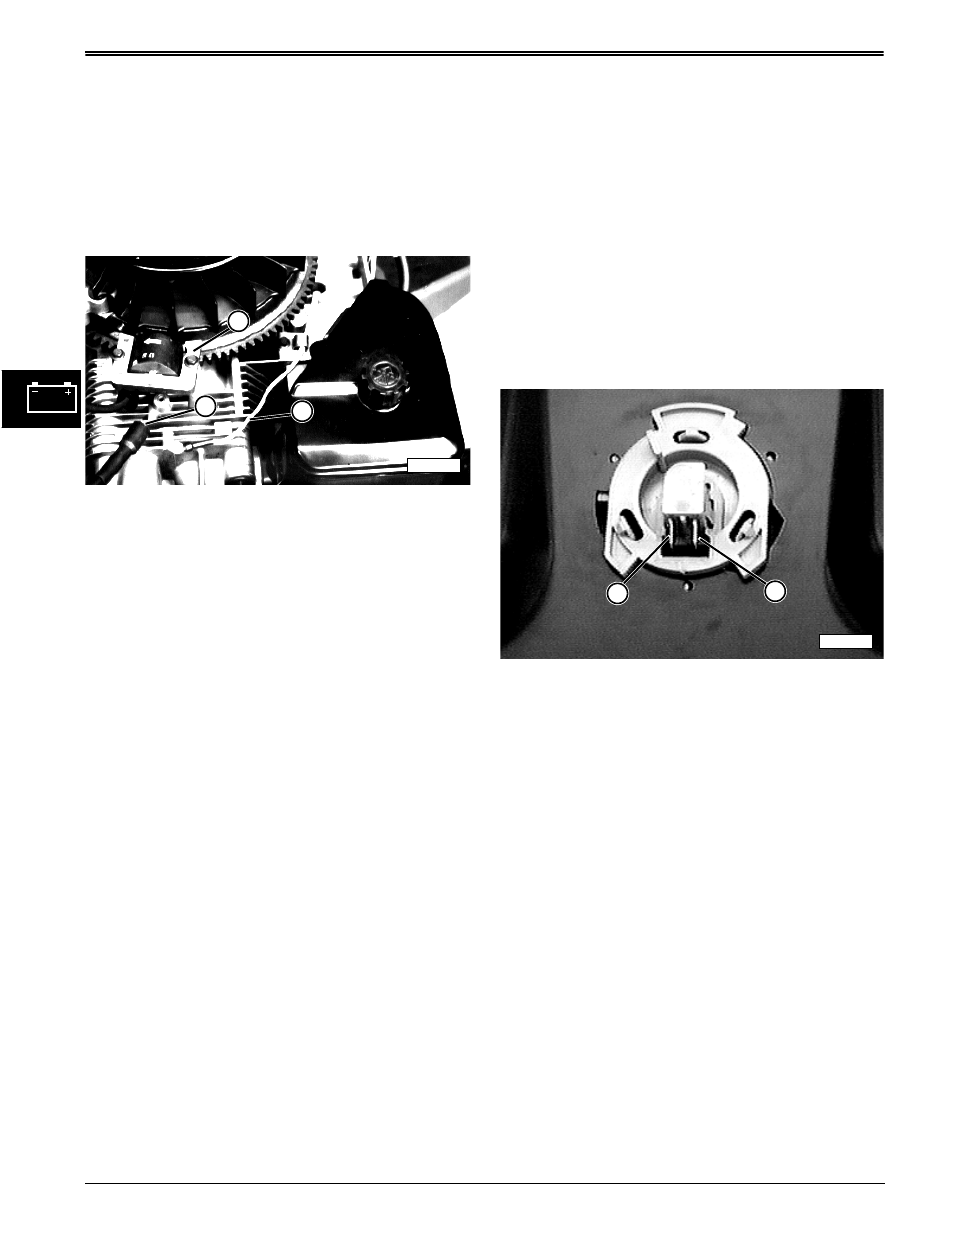 ignition module test, seat switch test john deere stx38 user General Motors Ignition Switch ignition module test, seat switch test john deere stx38 user manual page 152 314